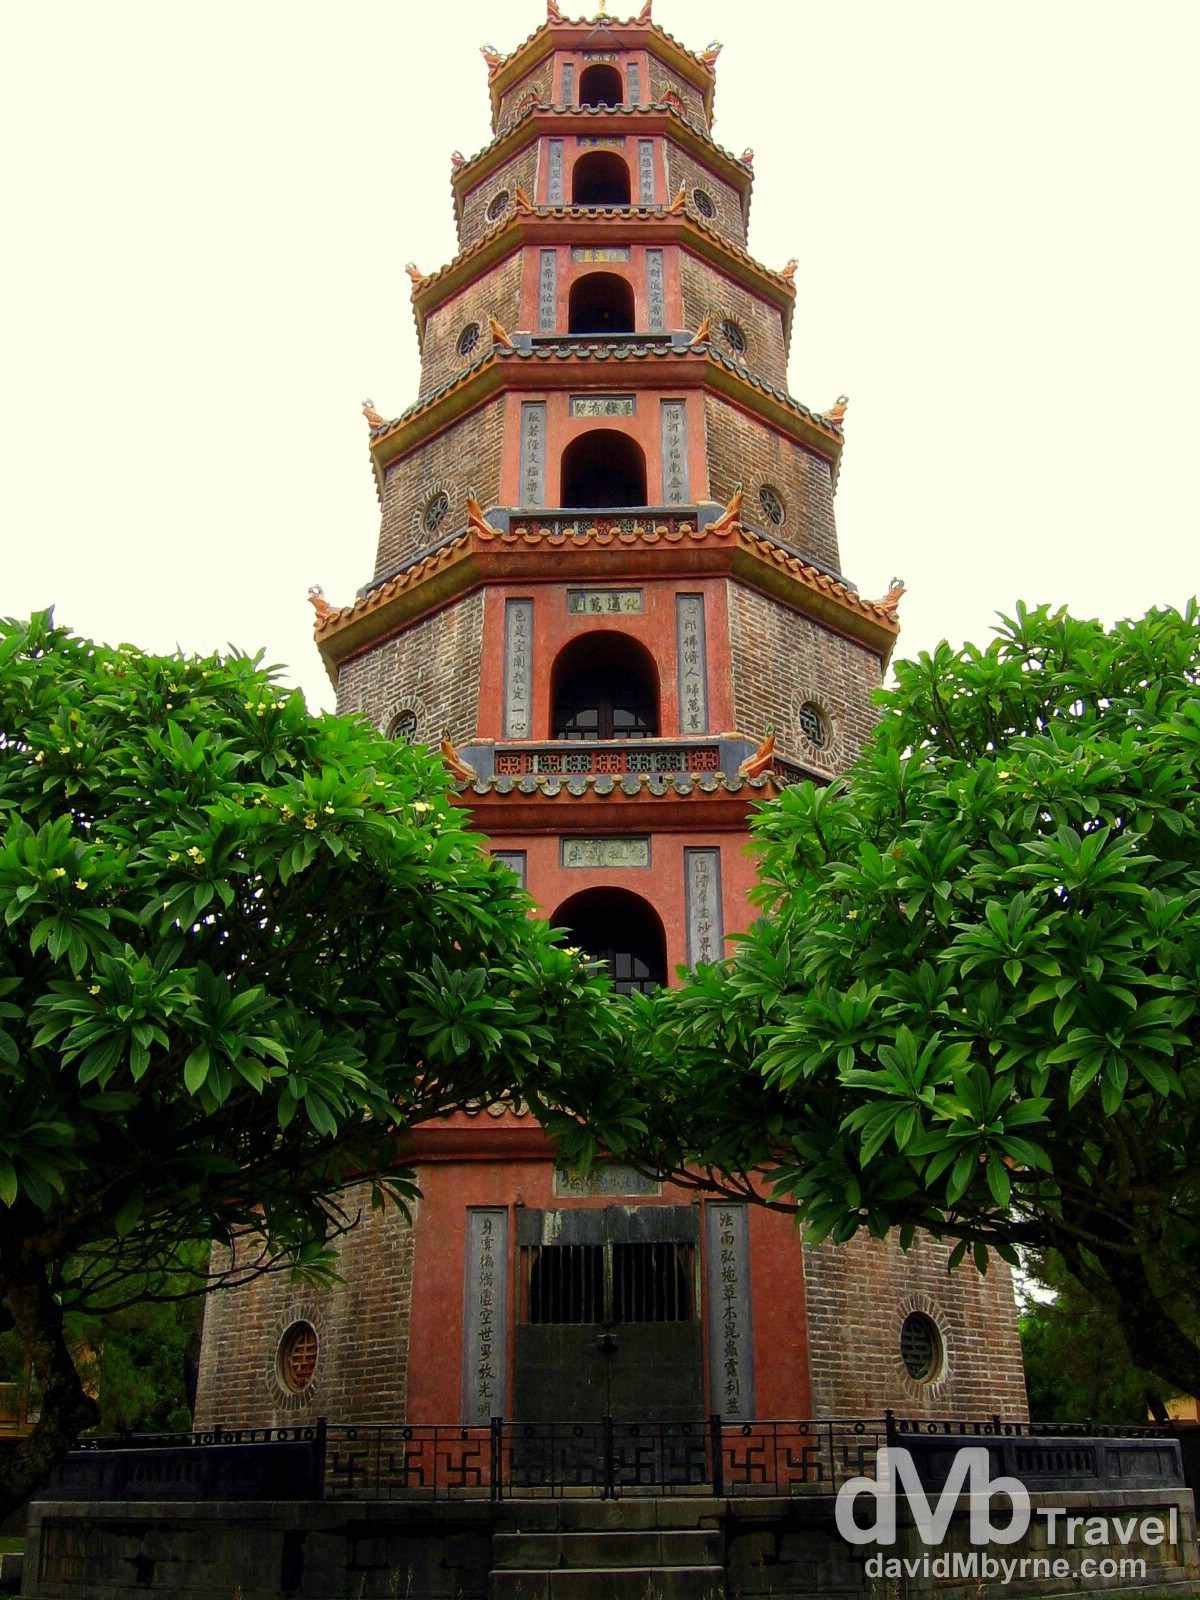 The iconic Thien Mu Pagoda on the banks of the Perfume River in Hue, Vietnam. September 8th 2005.